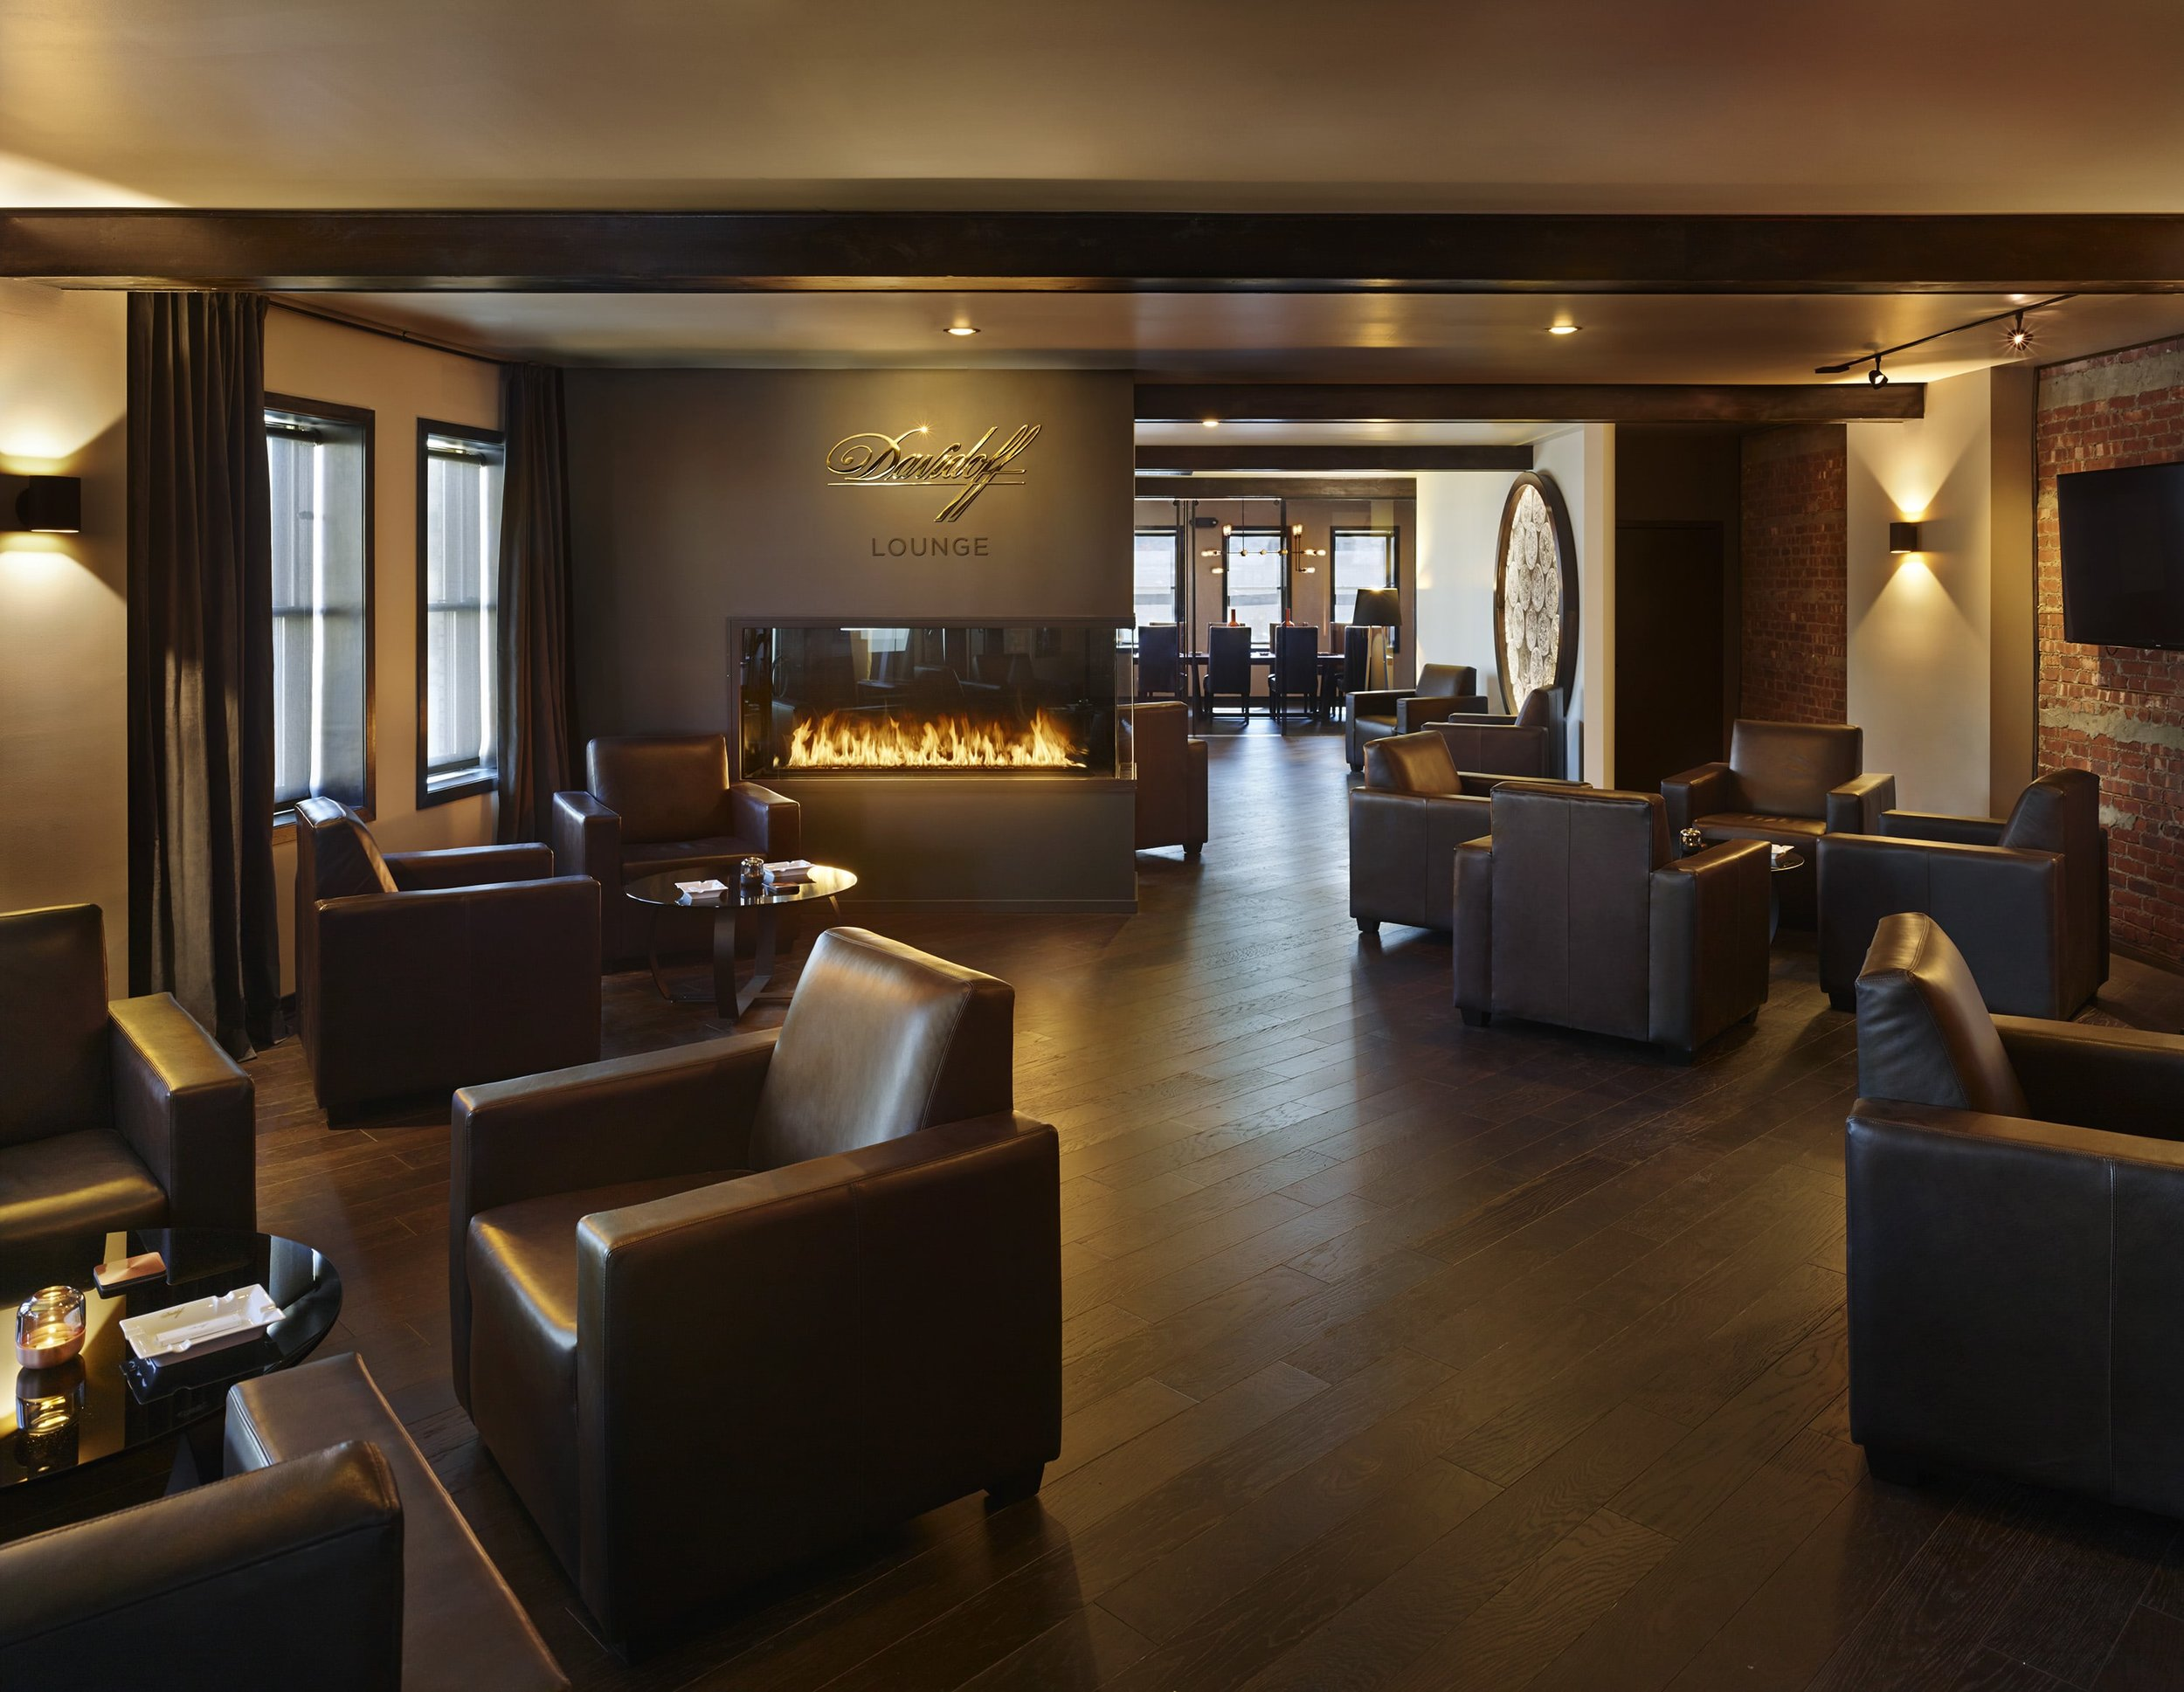 Davidoff Cigar Lounge in The Tobacco Shop of Ridgewood 3.jpg